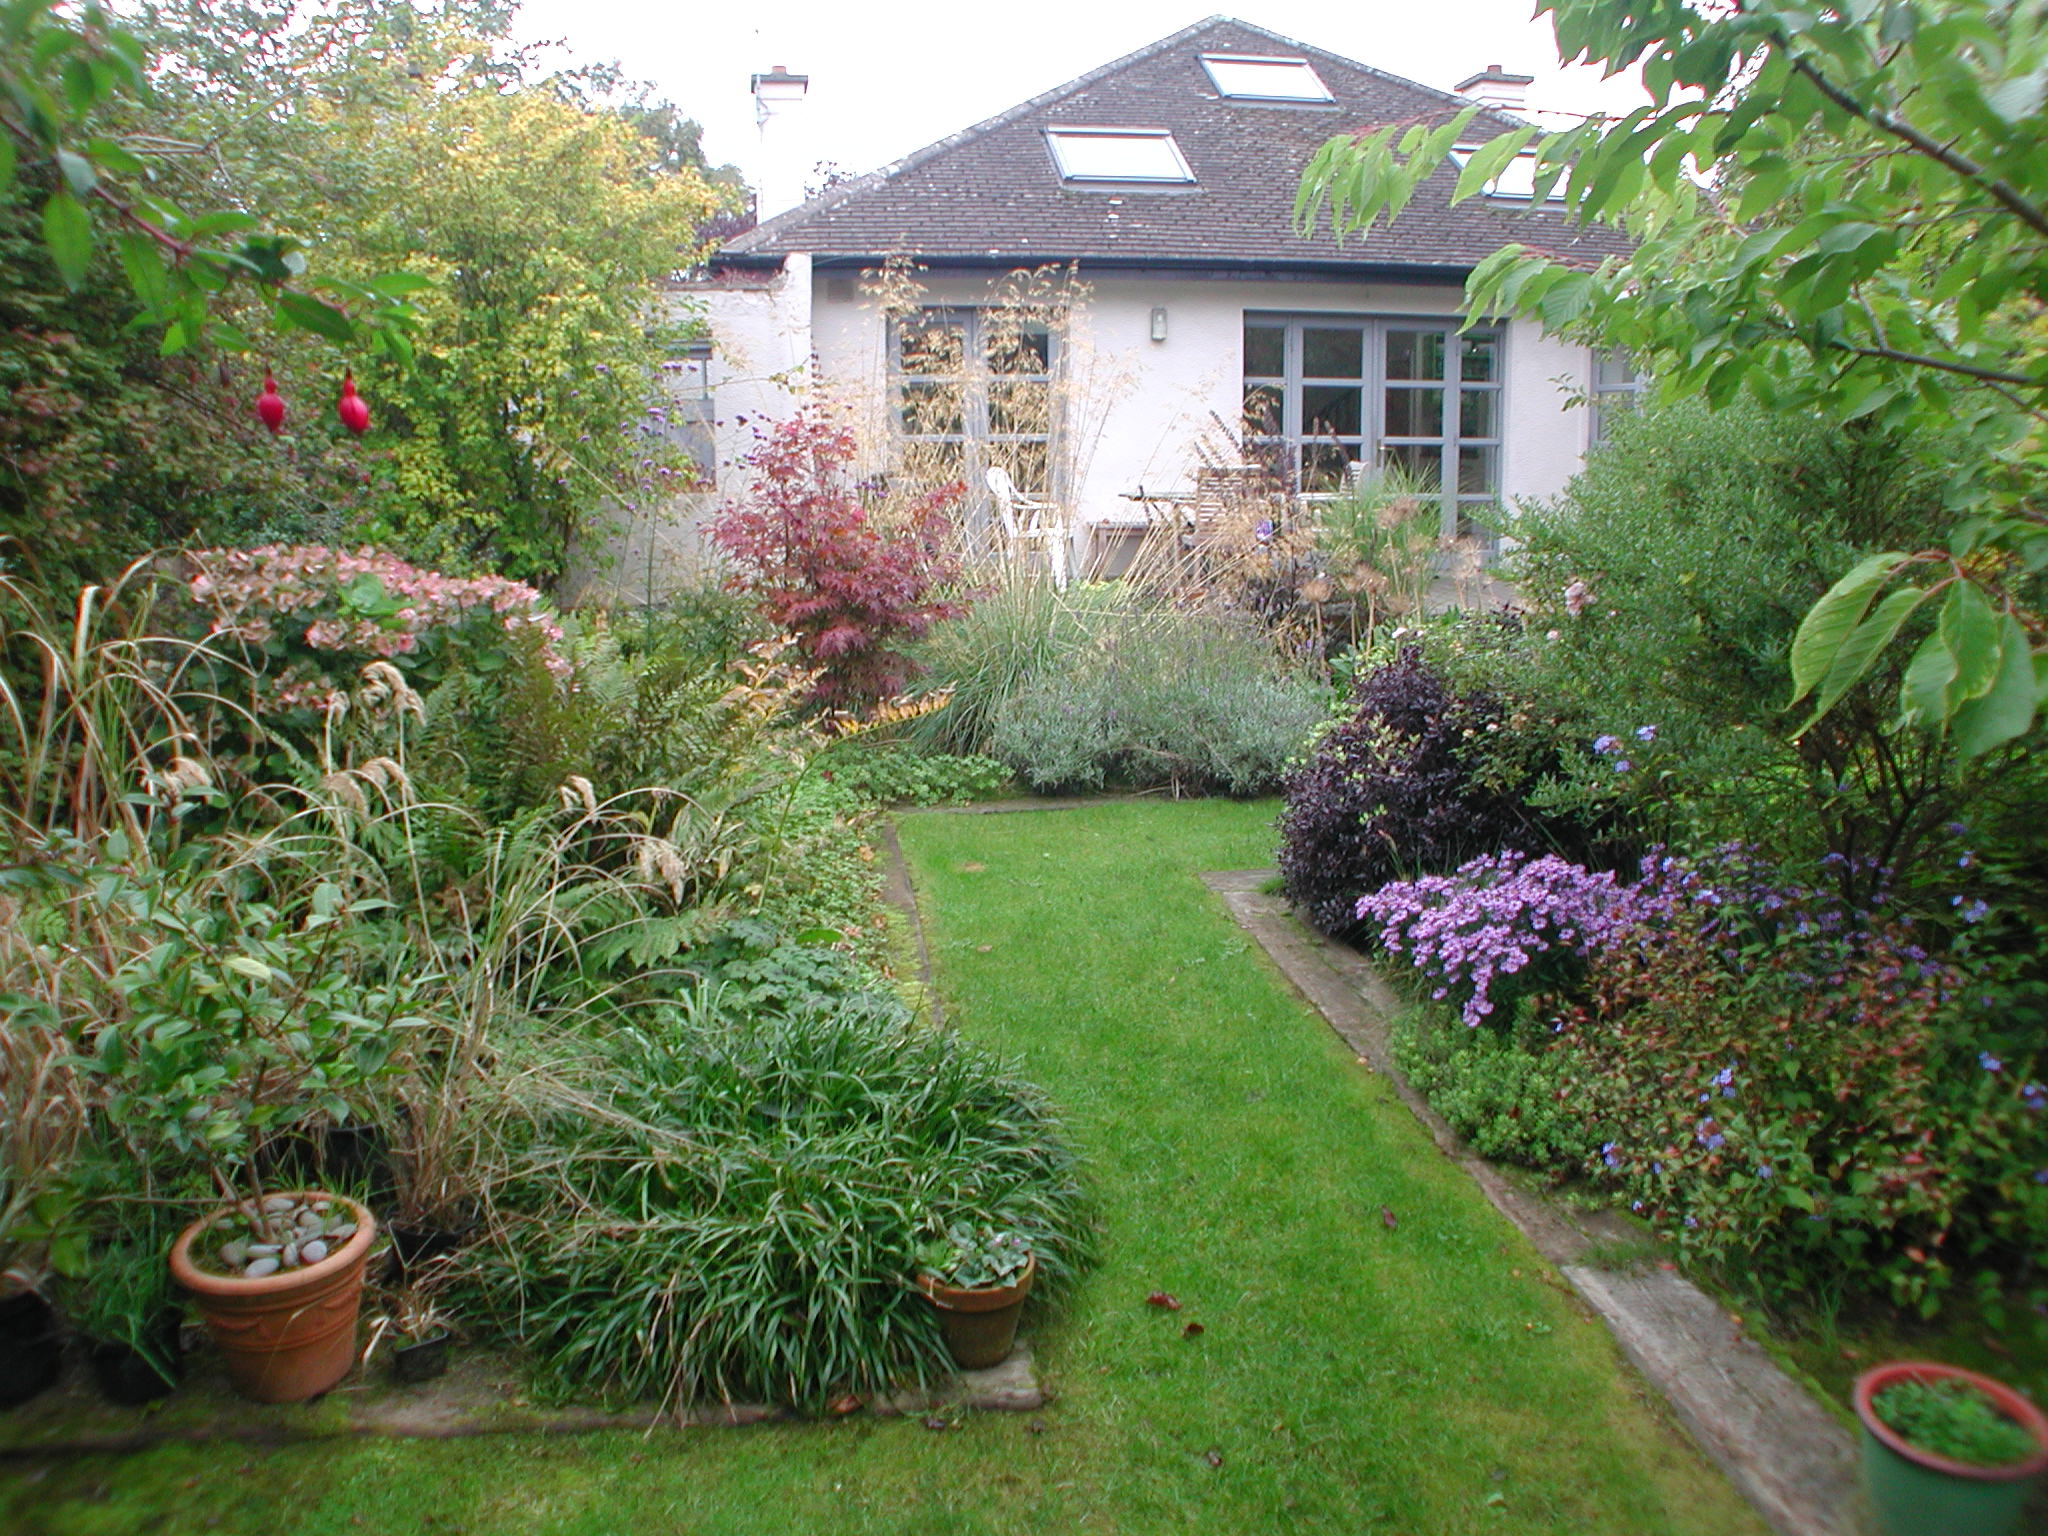 Planting for Garden Designs Dublin, Wicklow - Landscaping.ie